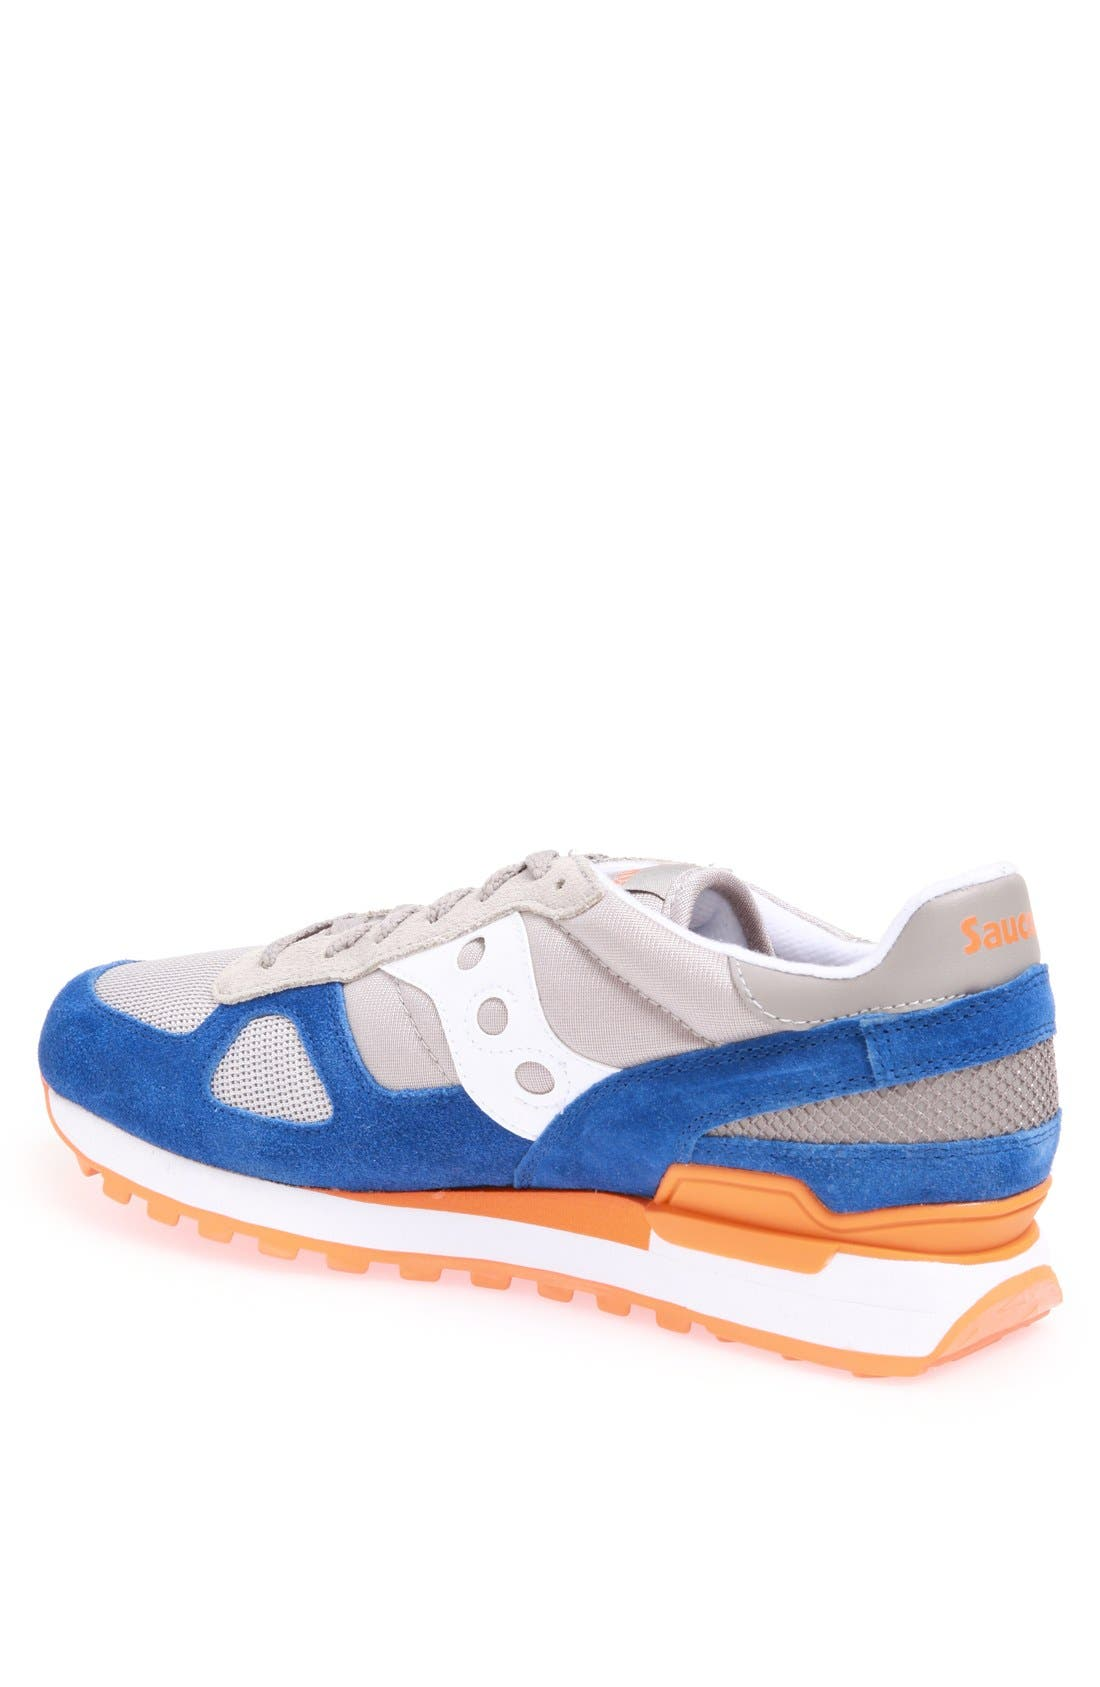 Alternate Image 2  - Saucony 'Shadow Original' Sneaker (Men)